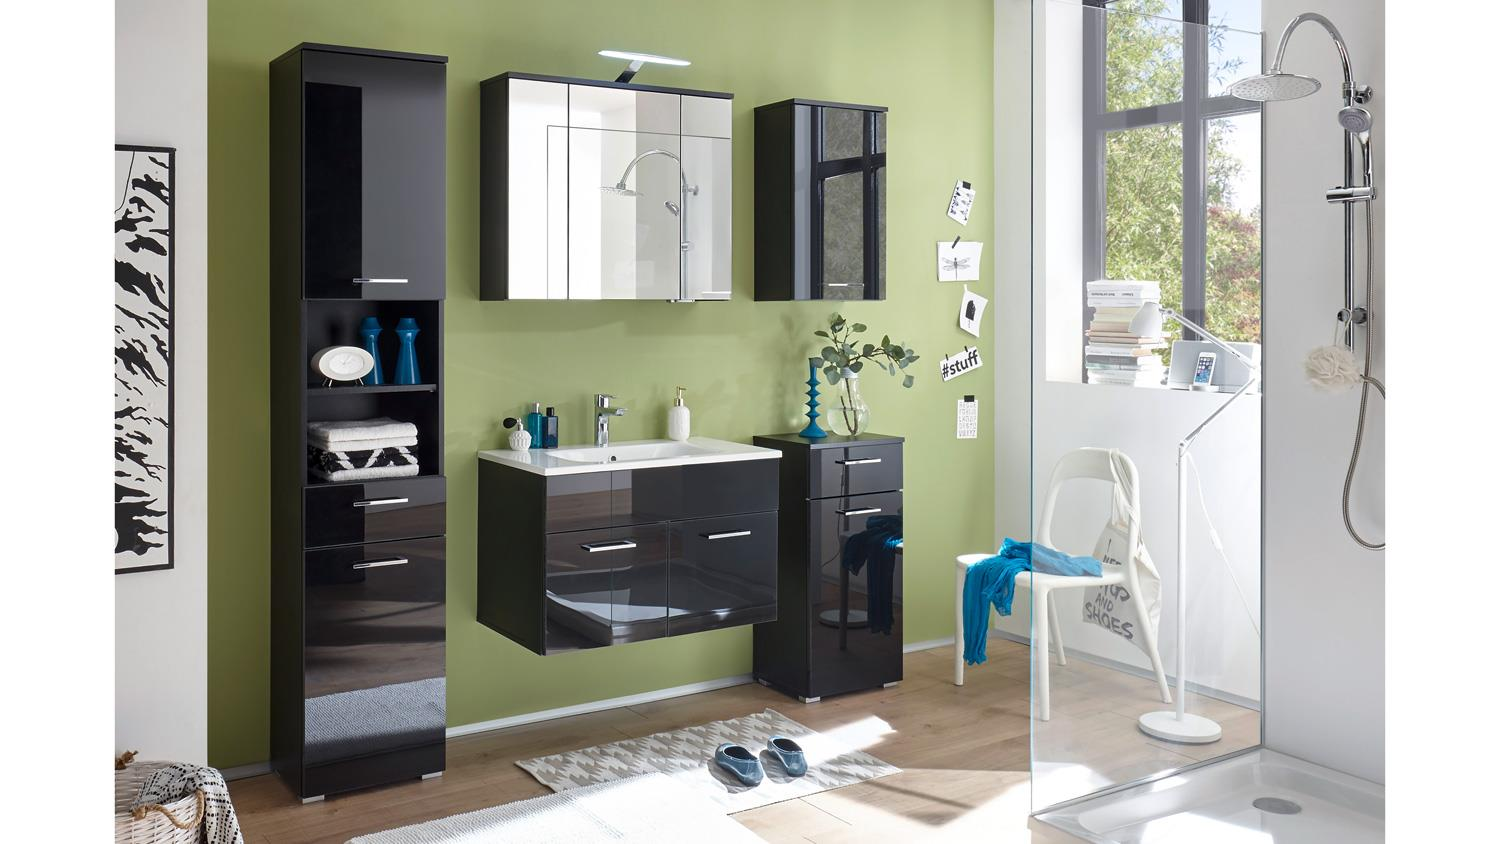 kommode denver badschrank schrank 1 t rig in schwarz mit glasfront. Black Bedroom Furniture Sets. Home Design Ideas